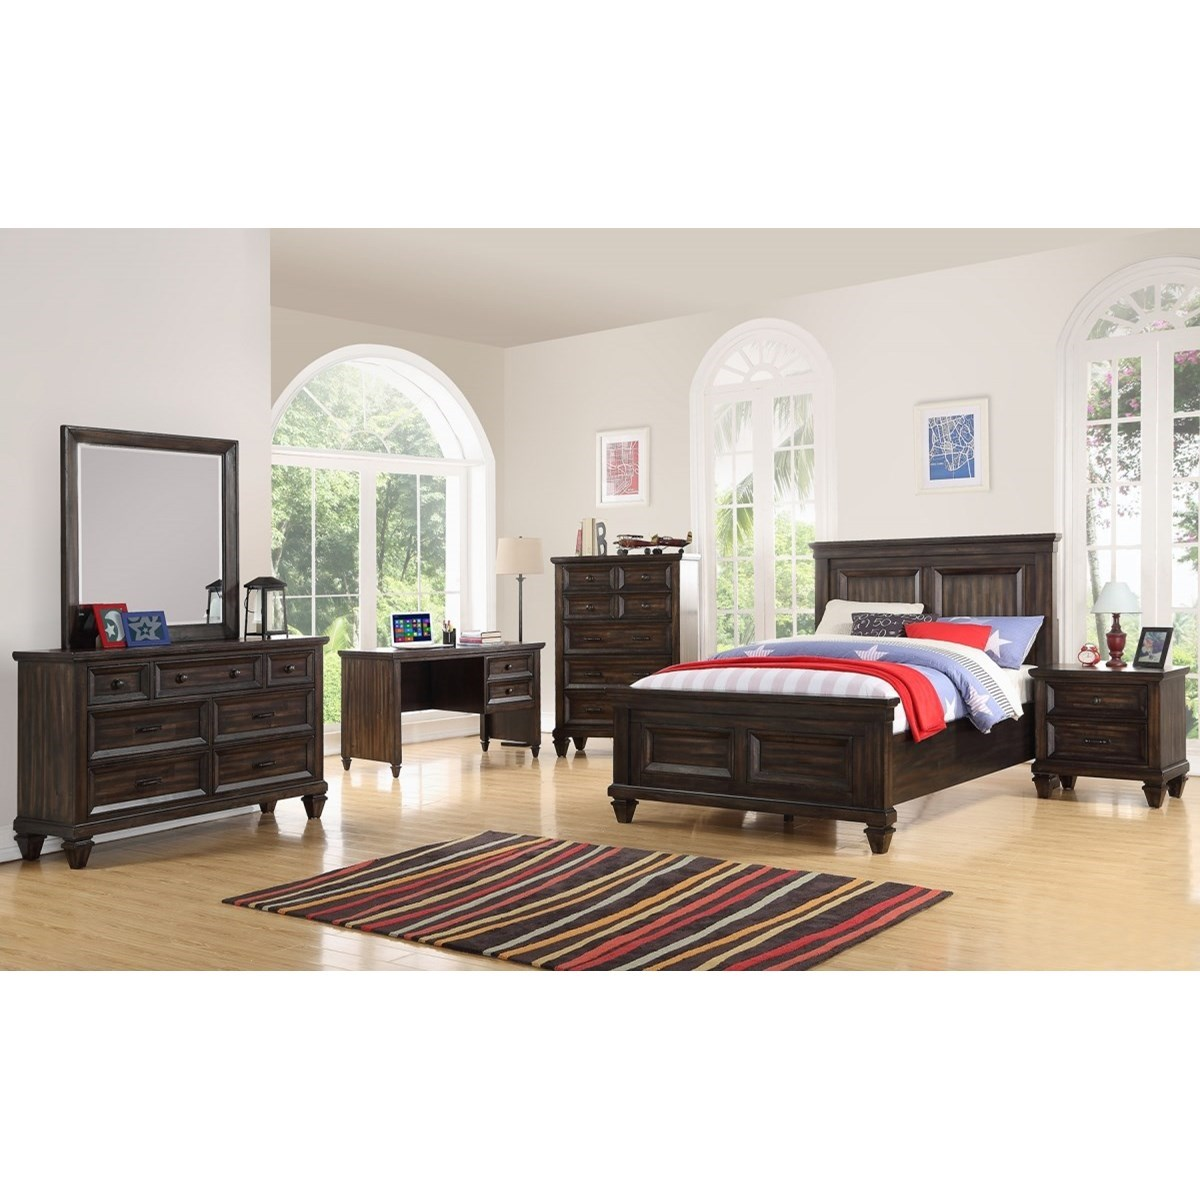 Sevilla Twin Bedroom Group by New Classic at Beck's Furniture